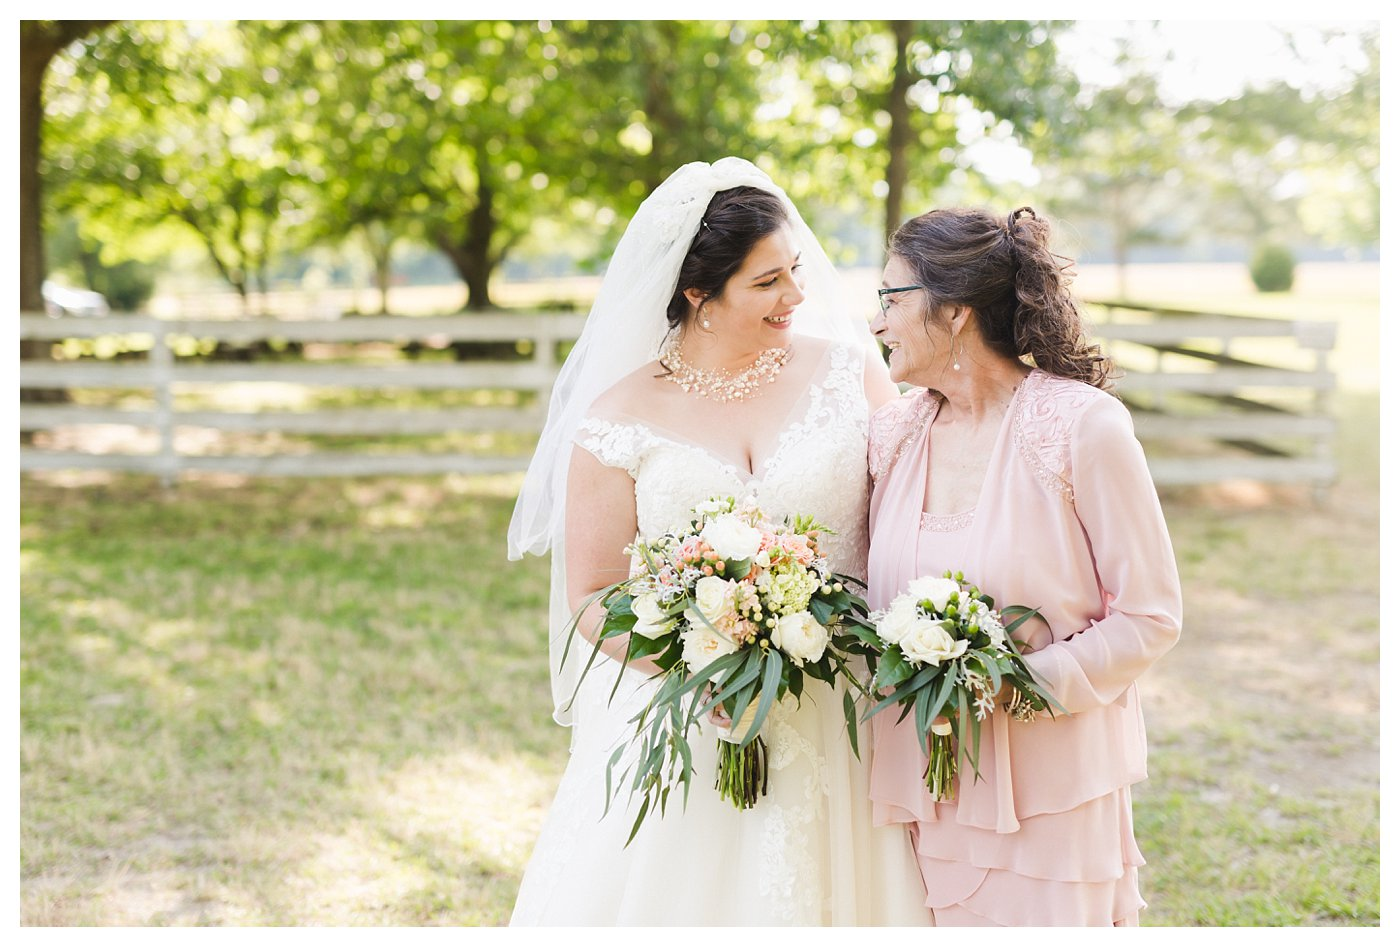 Historic_Hope_Plantation_Wedding_Photography_Sage_Summer_Outdoor_Windsor_NC_0026.jpg